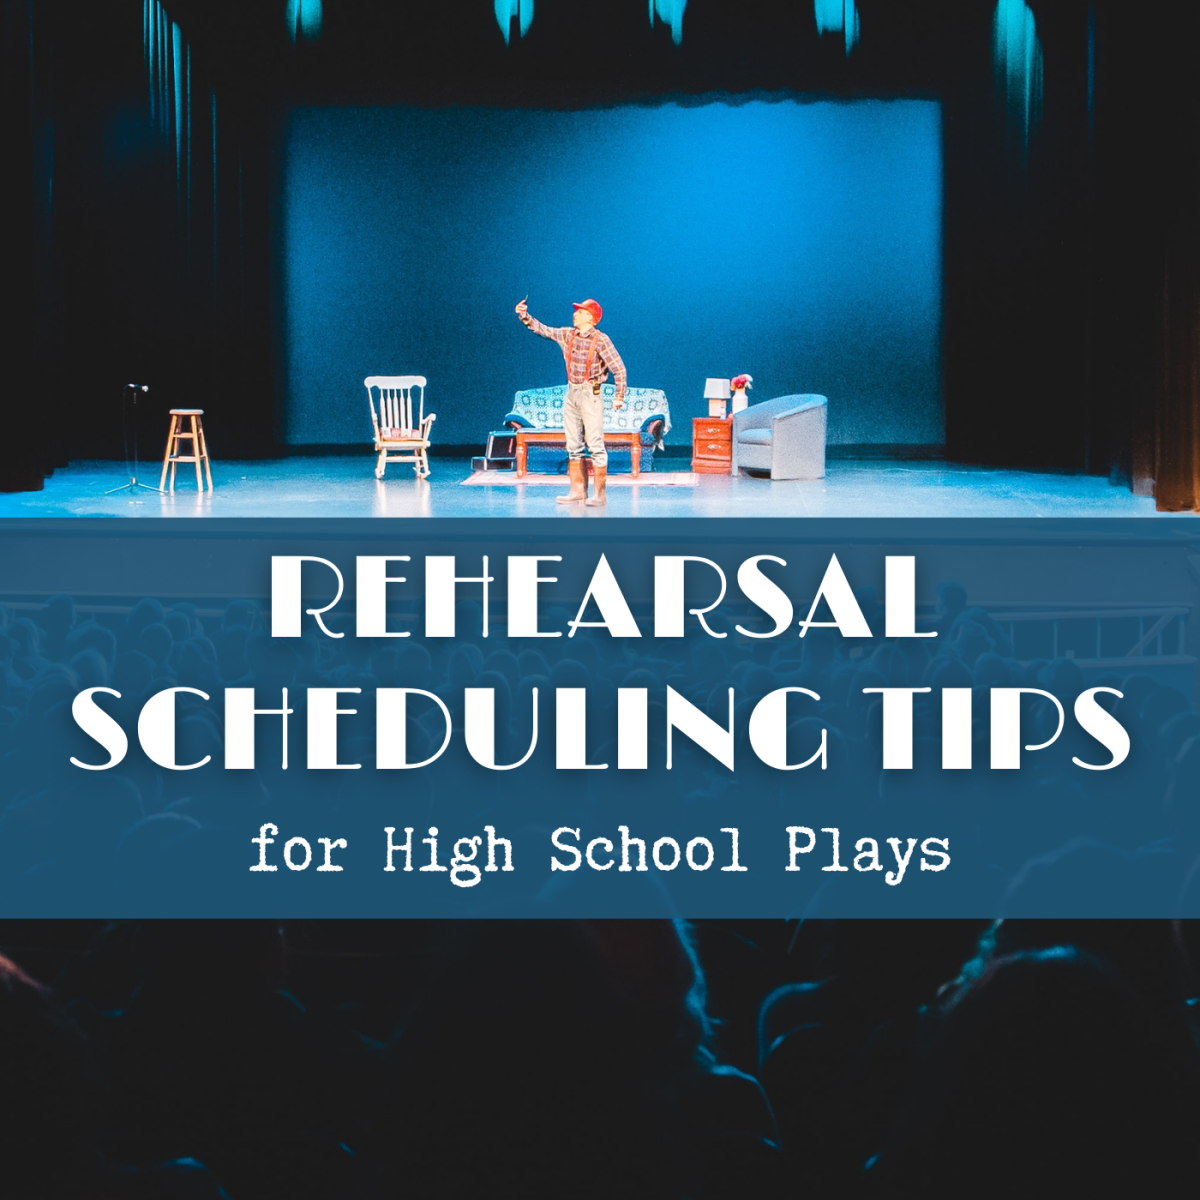 If you're directing a high school play, learn how to effectively schedule the rehearsals.